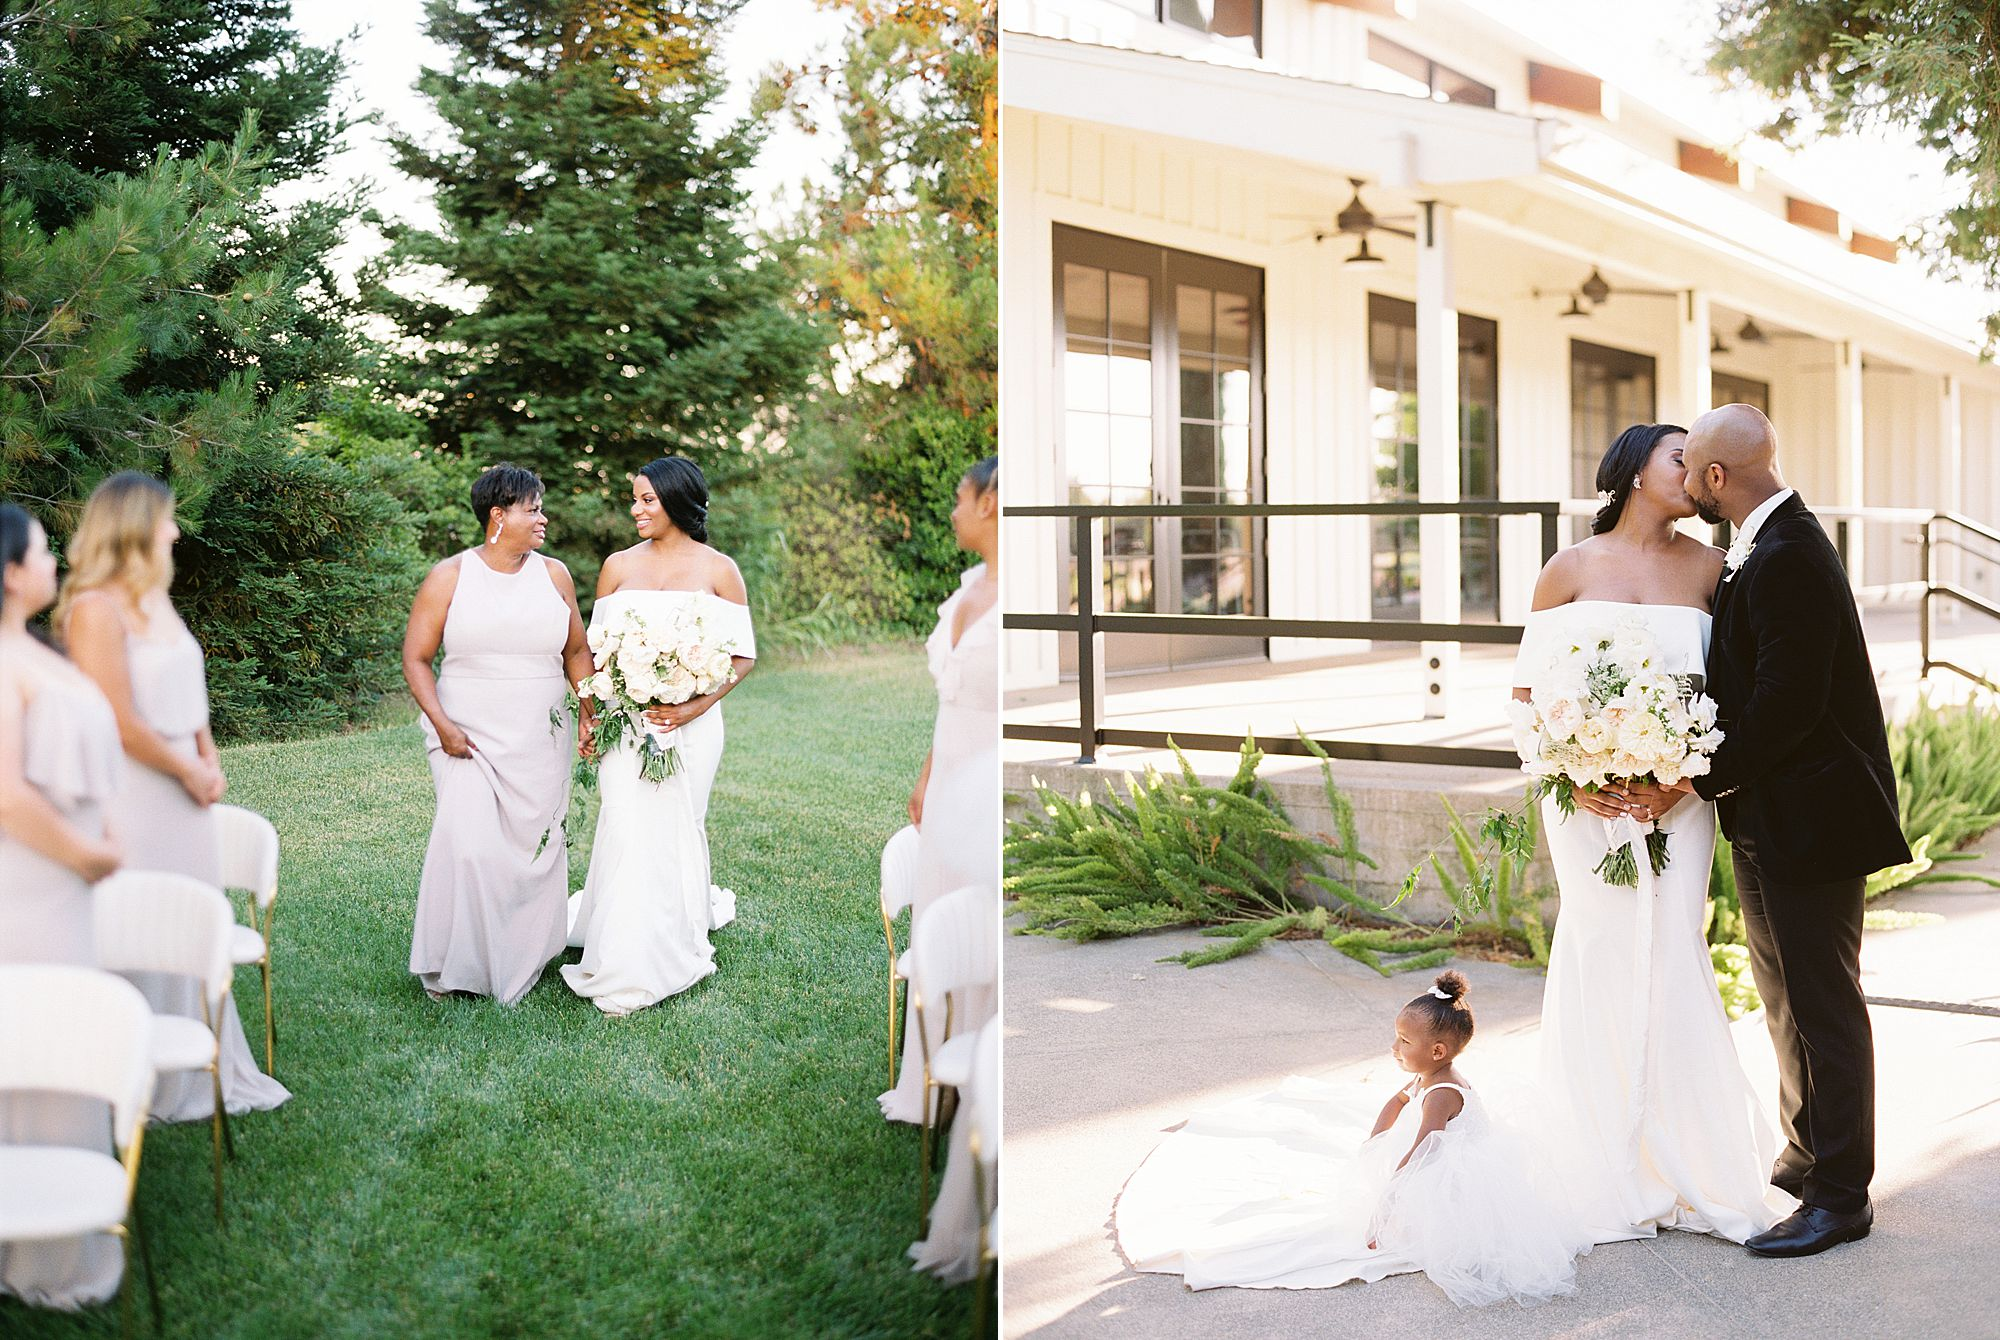 Park Winters Micro-Wedding Inspiration on Style Me Pretty - Stephanie Teague Events - Ashley Baumgartner - Park Winters Wedding - Black Tie Wedding - Micro-Wedding Sacramento Photographer_0063.jpg